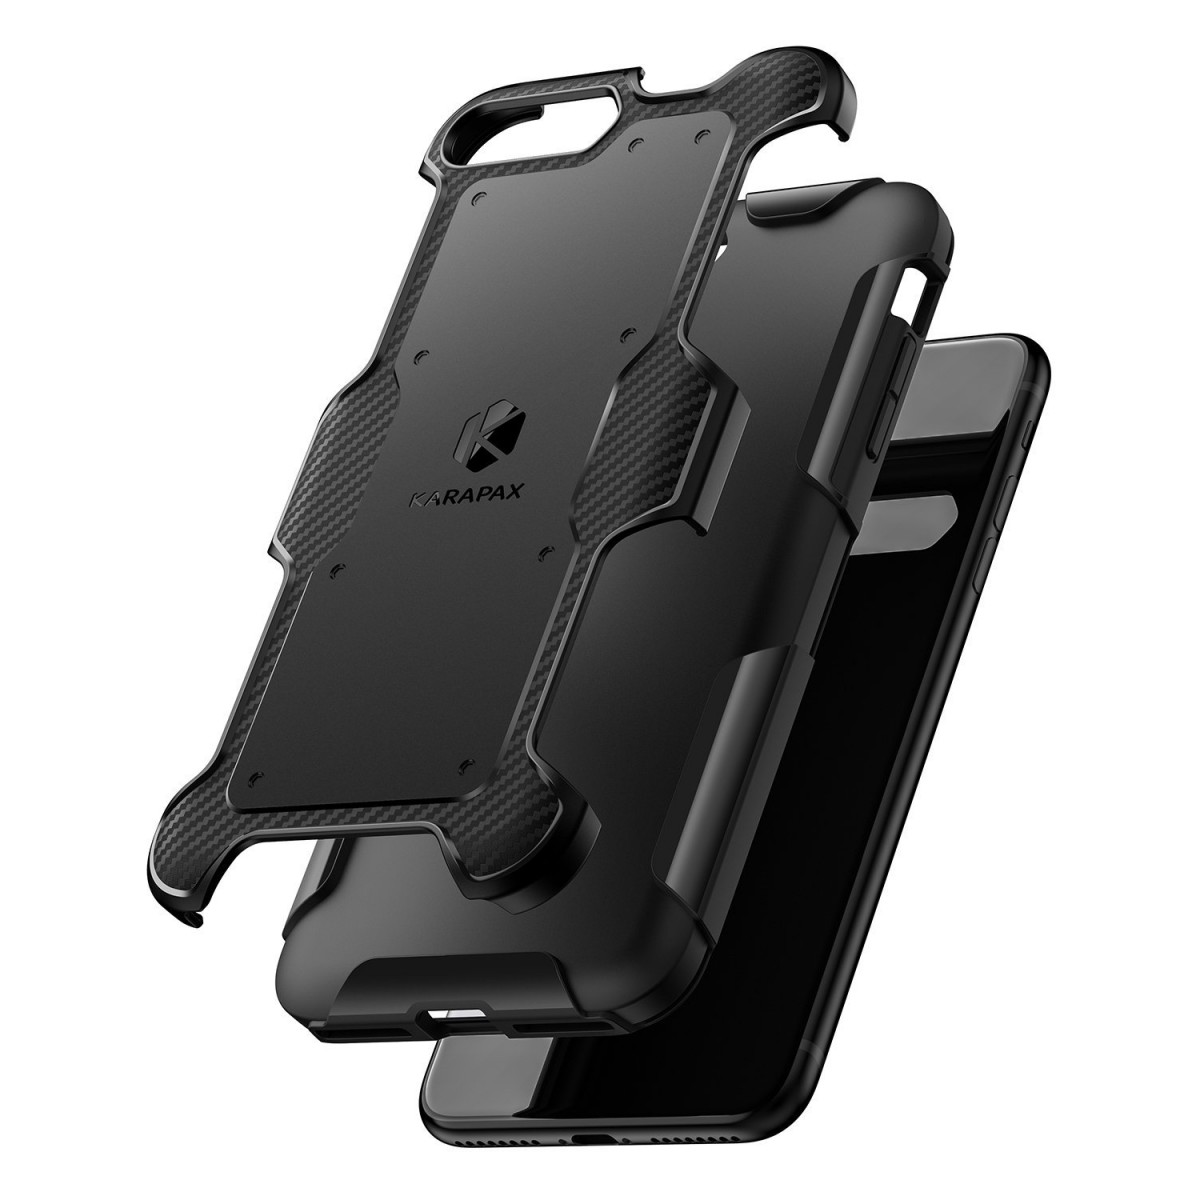 hot sales e3477 8a193 iPhone 8 Plus Case, iPhone 7 Plus Case, Anker Shield+ Case Dual Layer Heavy  Duty Protective Military-Grade Certified Protection [Support Wireless ...